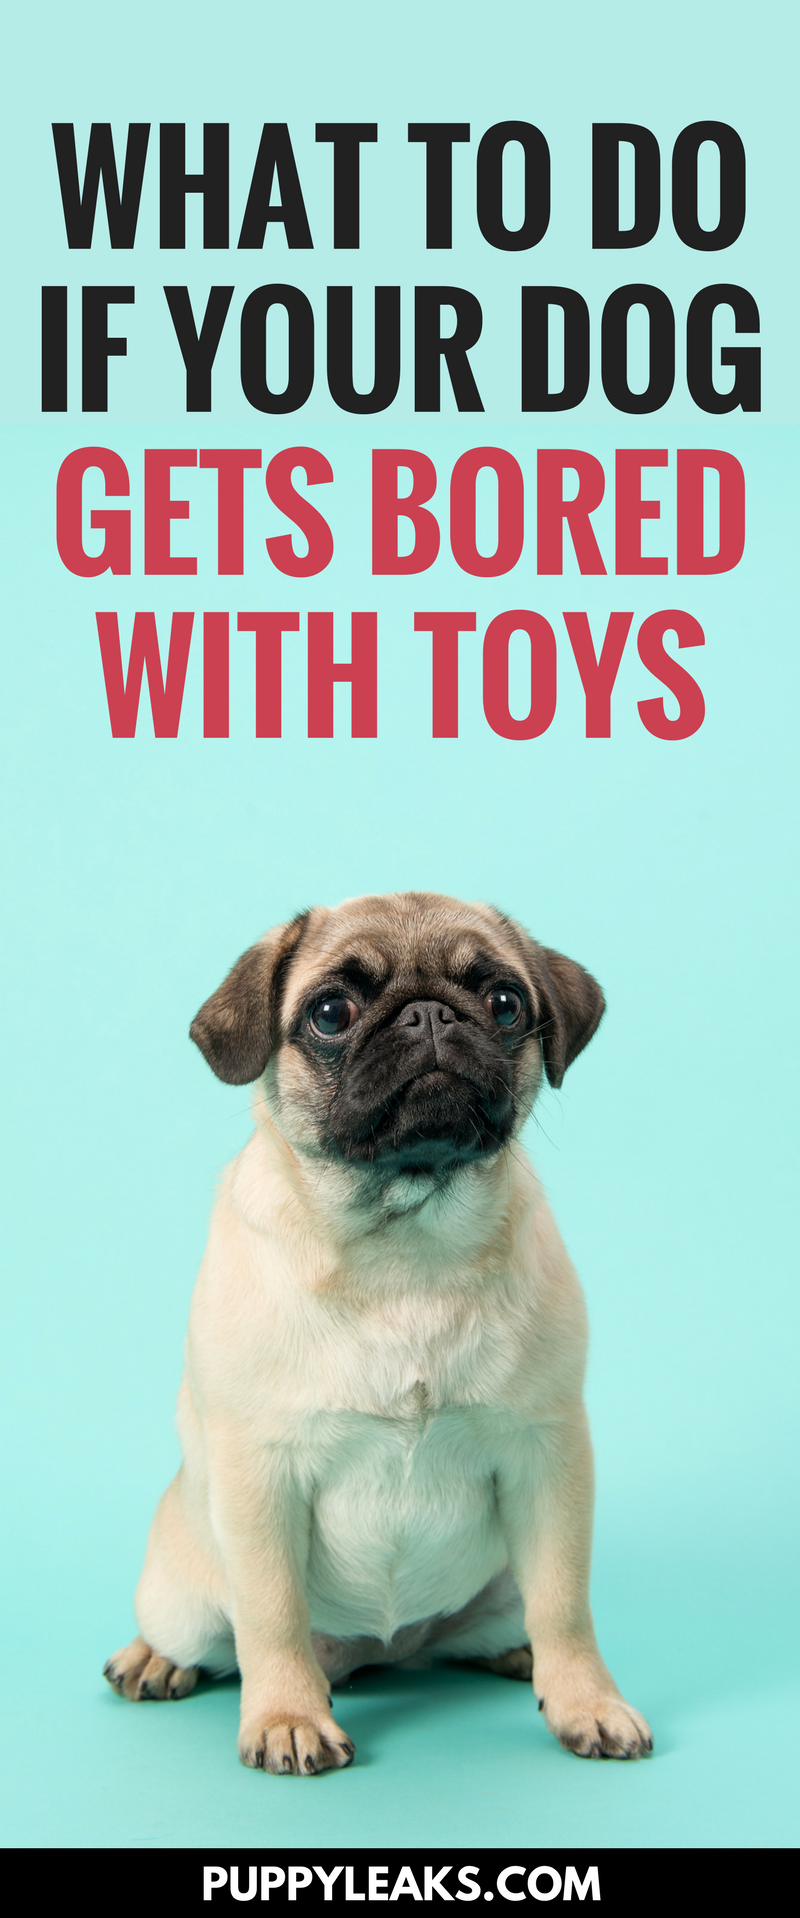 What to do if your dog gets bored with their toys